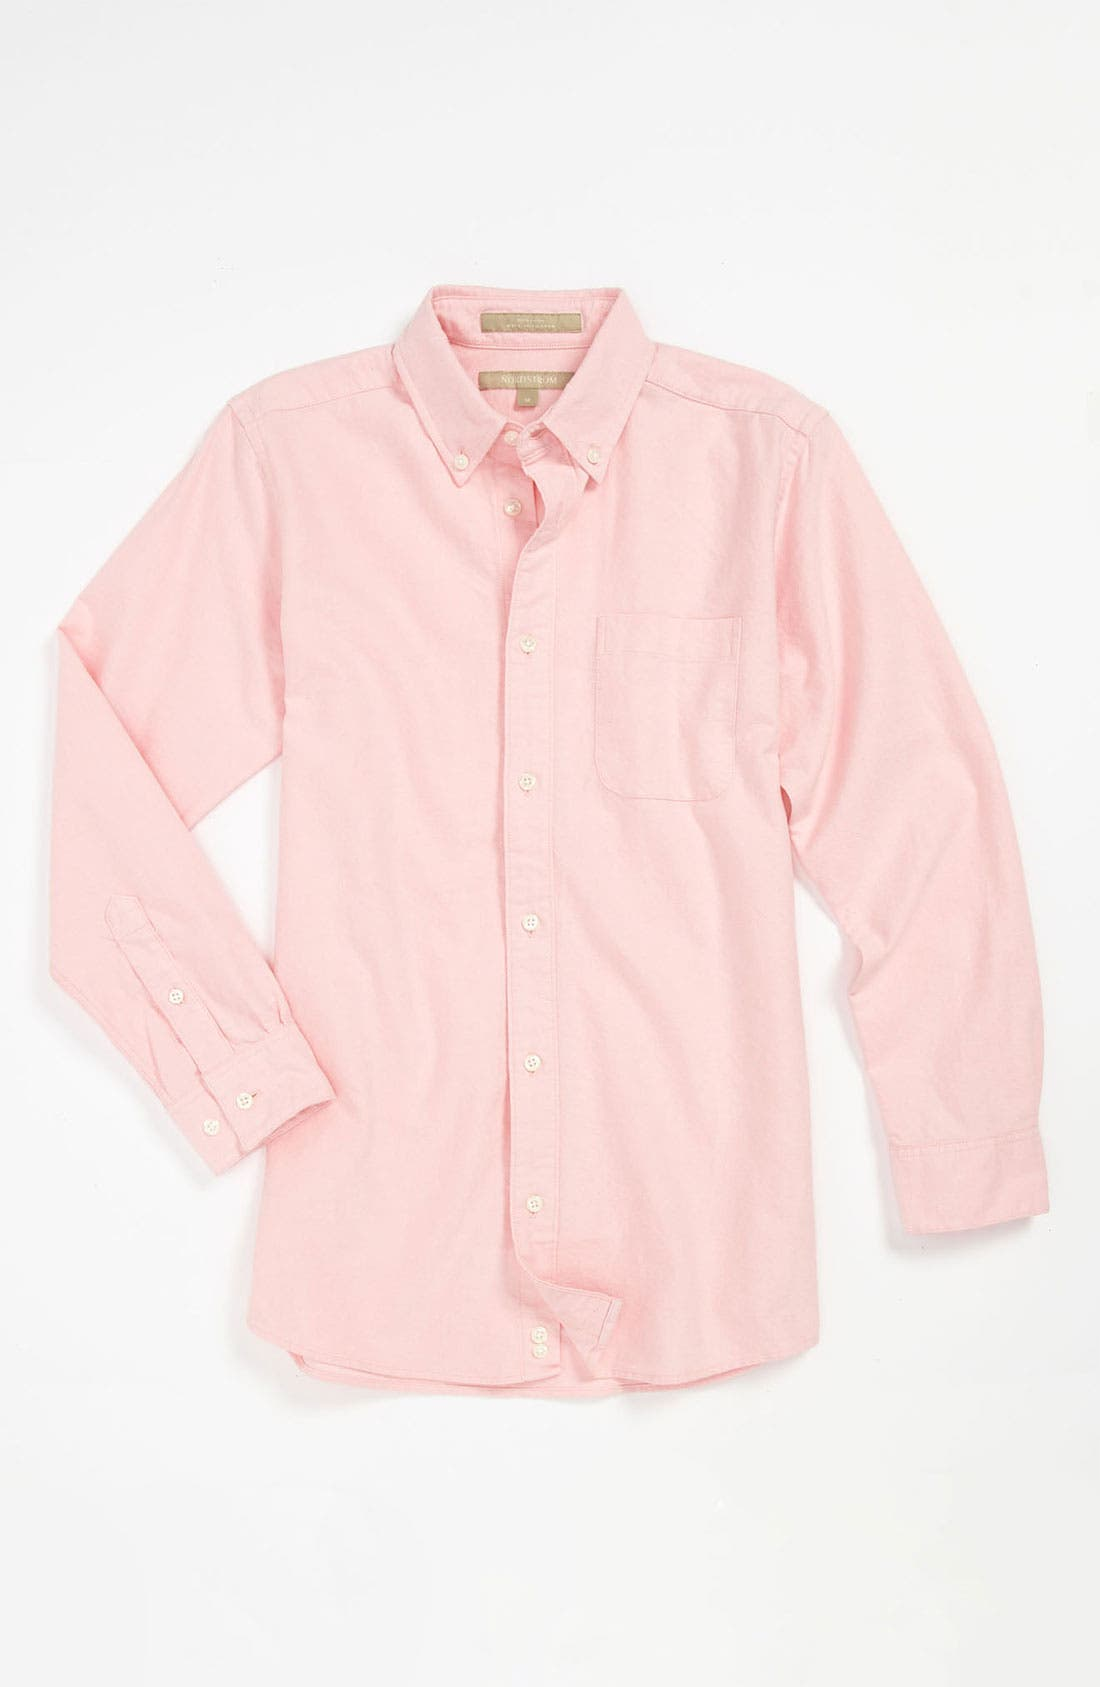 Main Image - Nordstrom 'Michael' Woven Oxford Shirt (Little Boys)